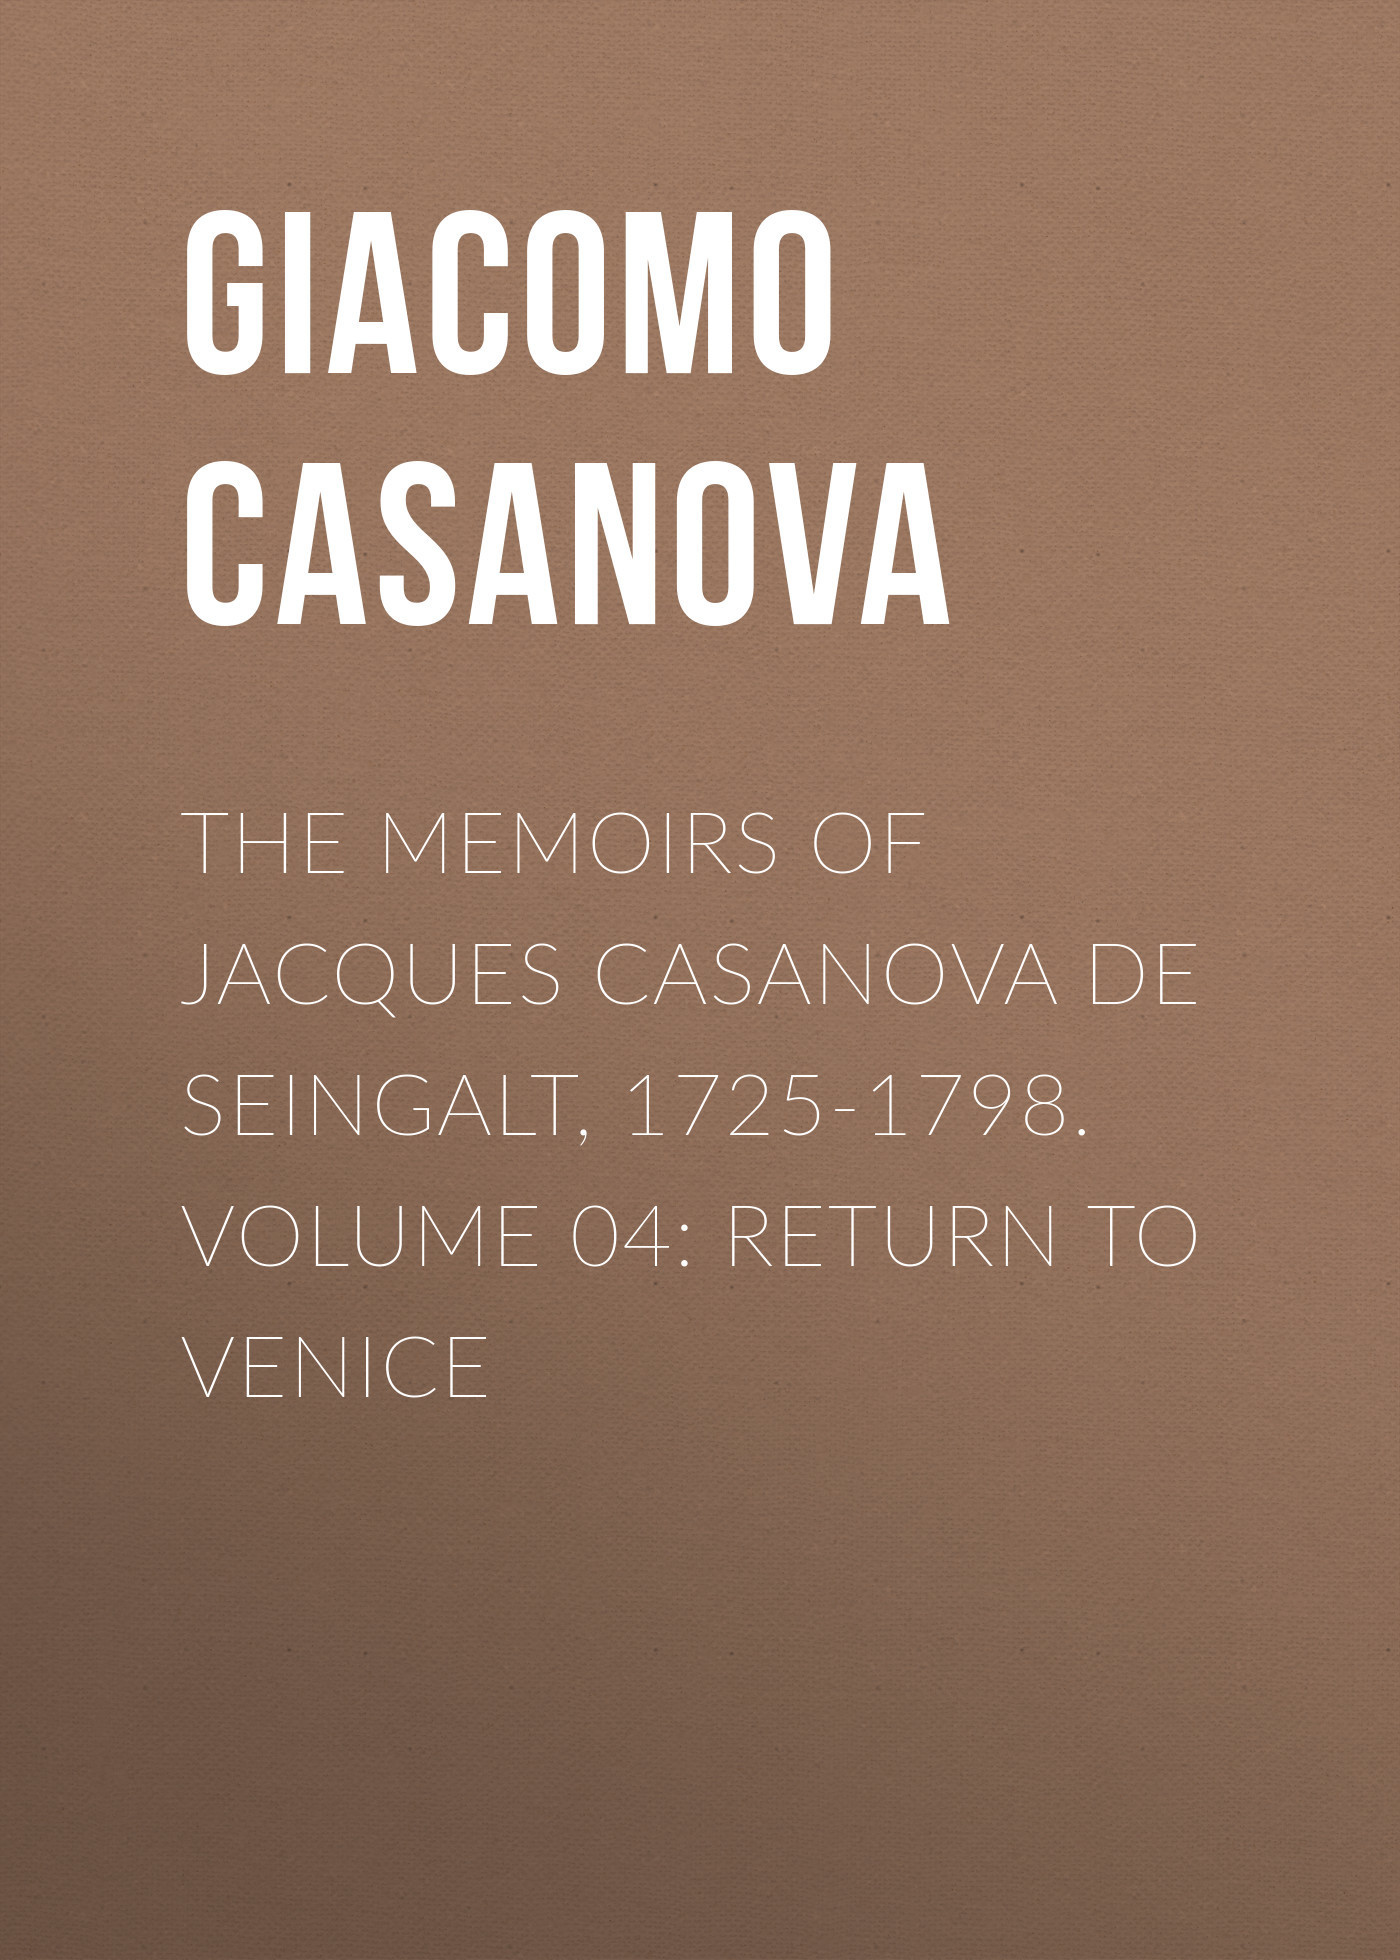 Giacomo Casanova The Memoirs of Jacques Casanova de Seingalt, 1725-1798. Volume 04: Return to Venice